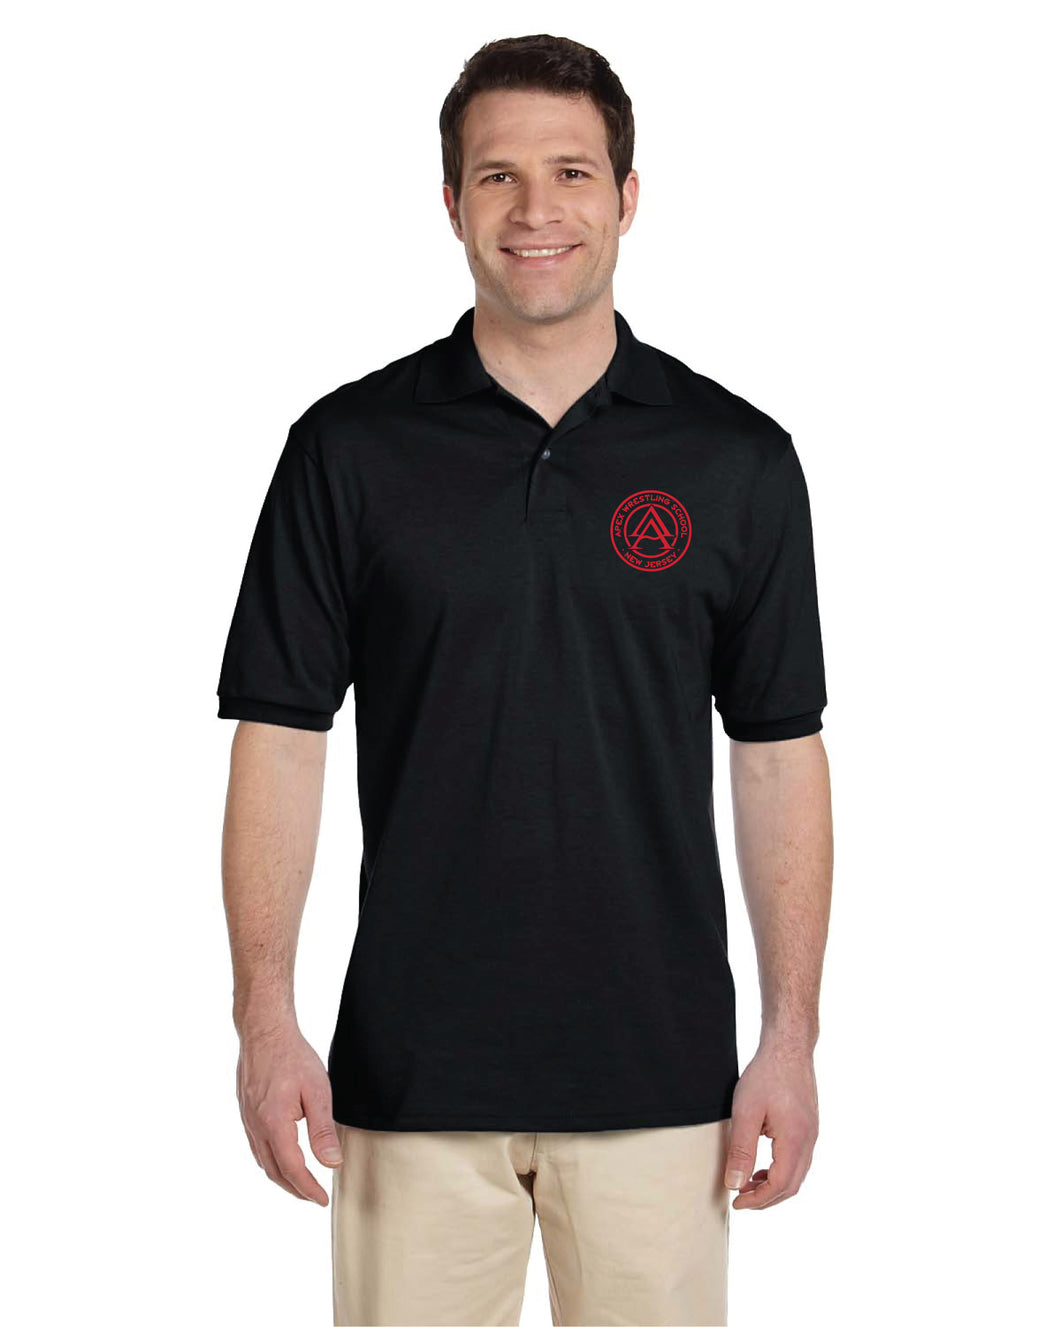 Apex Wrestling Performance Polo - Black/Red/White